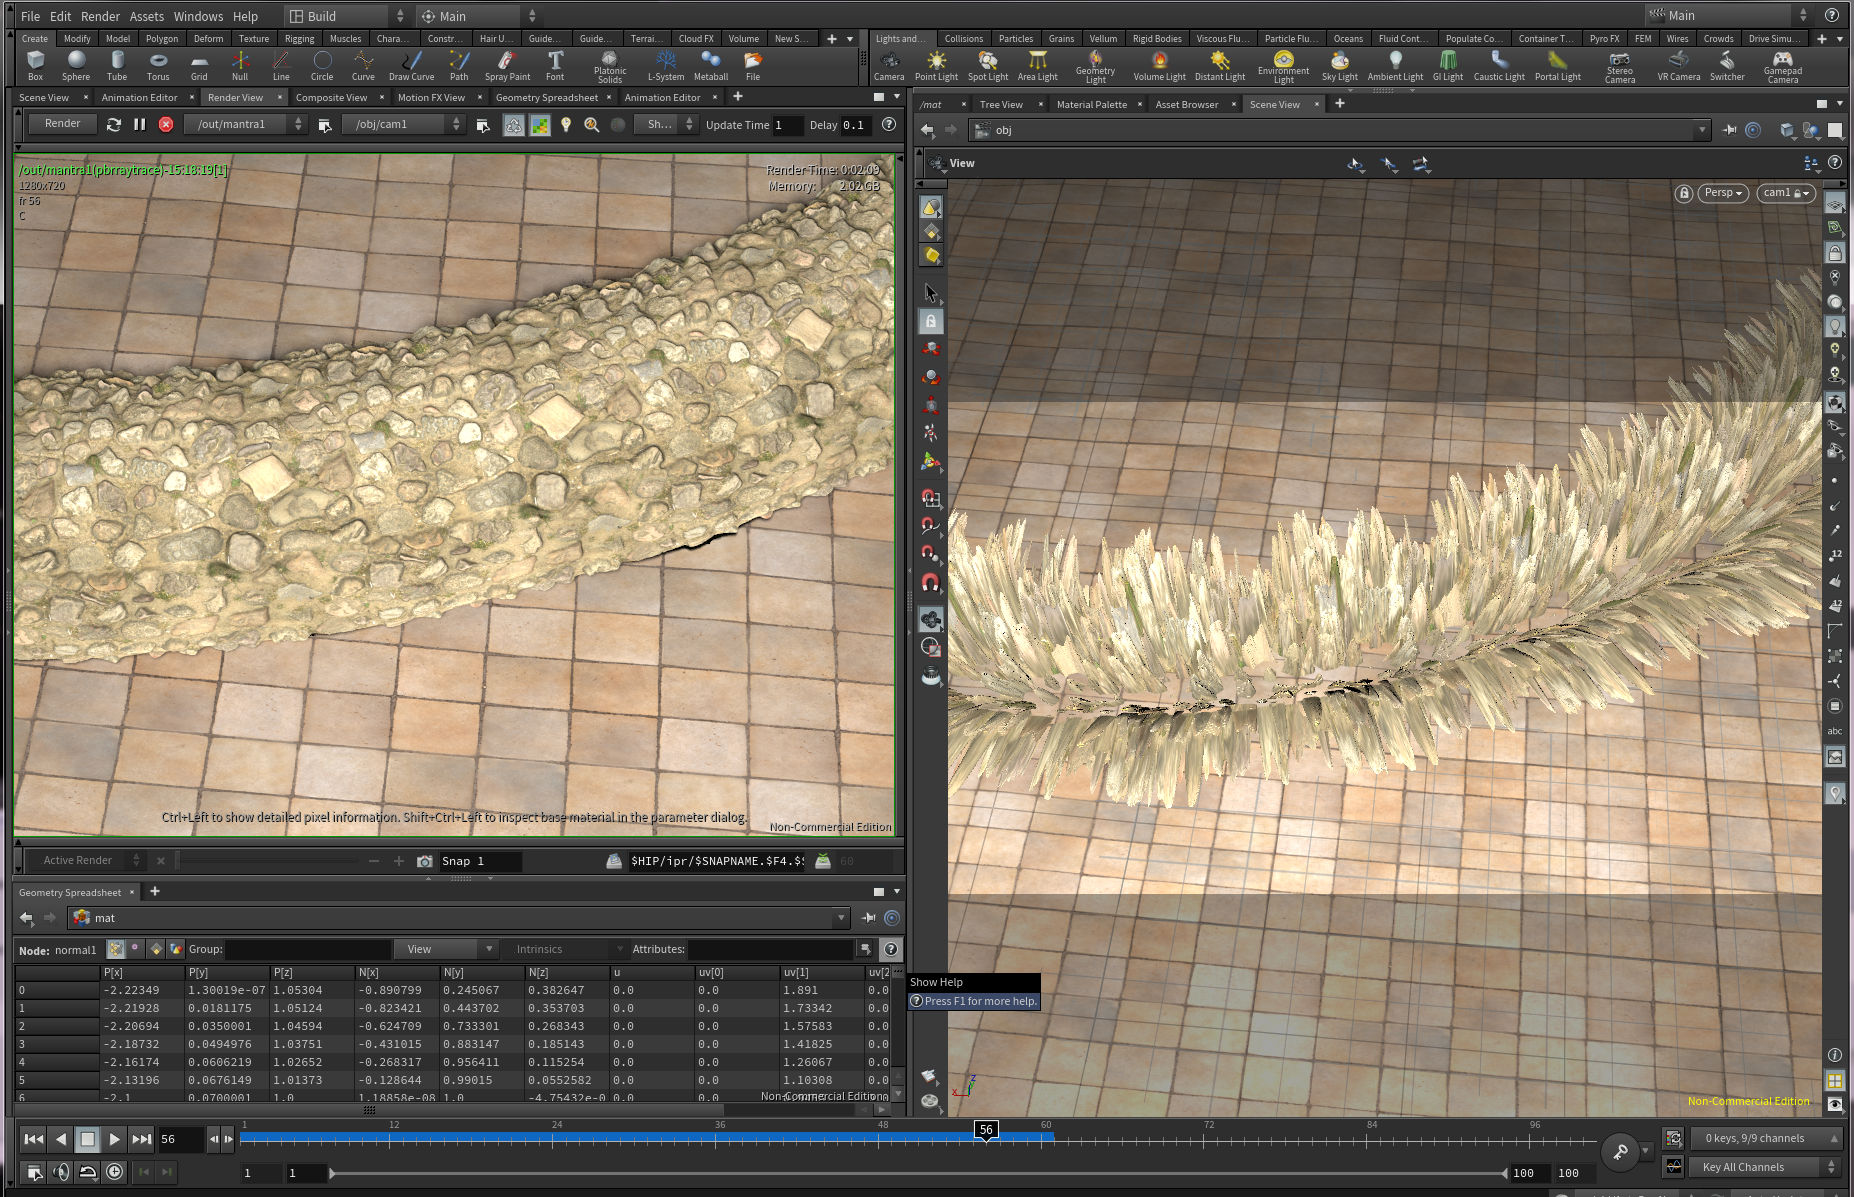 Texture displacement looks different in viewport and render